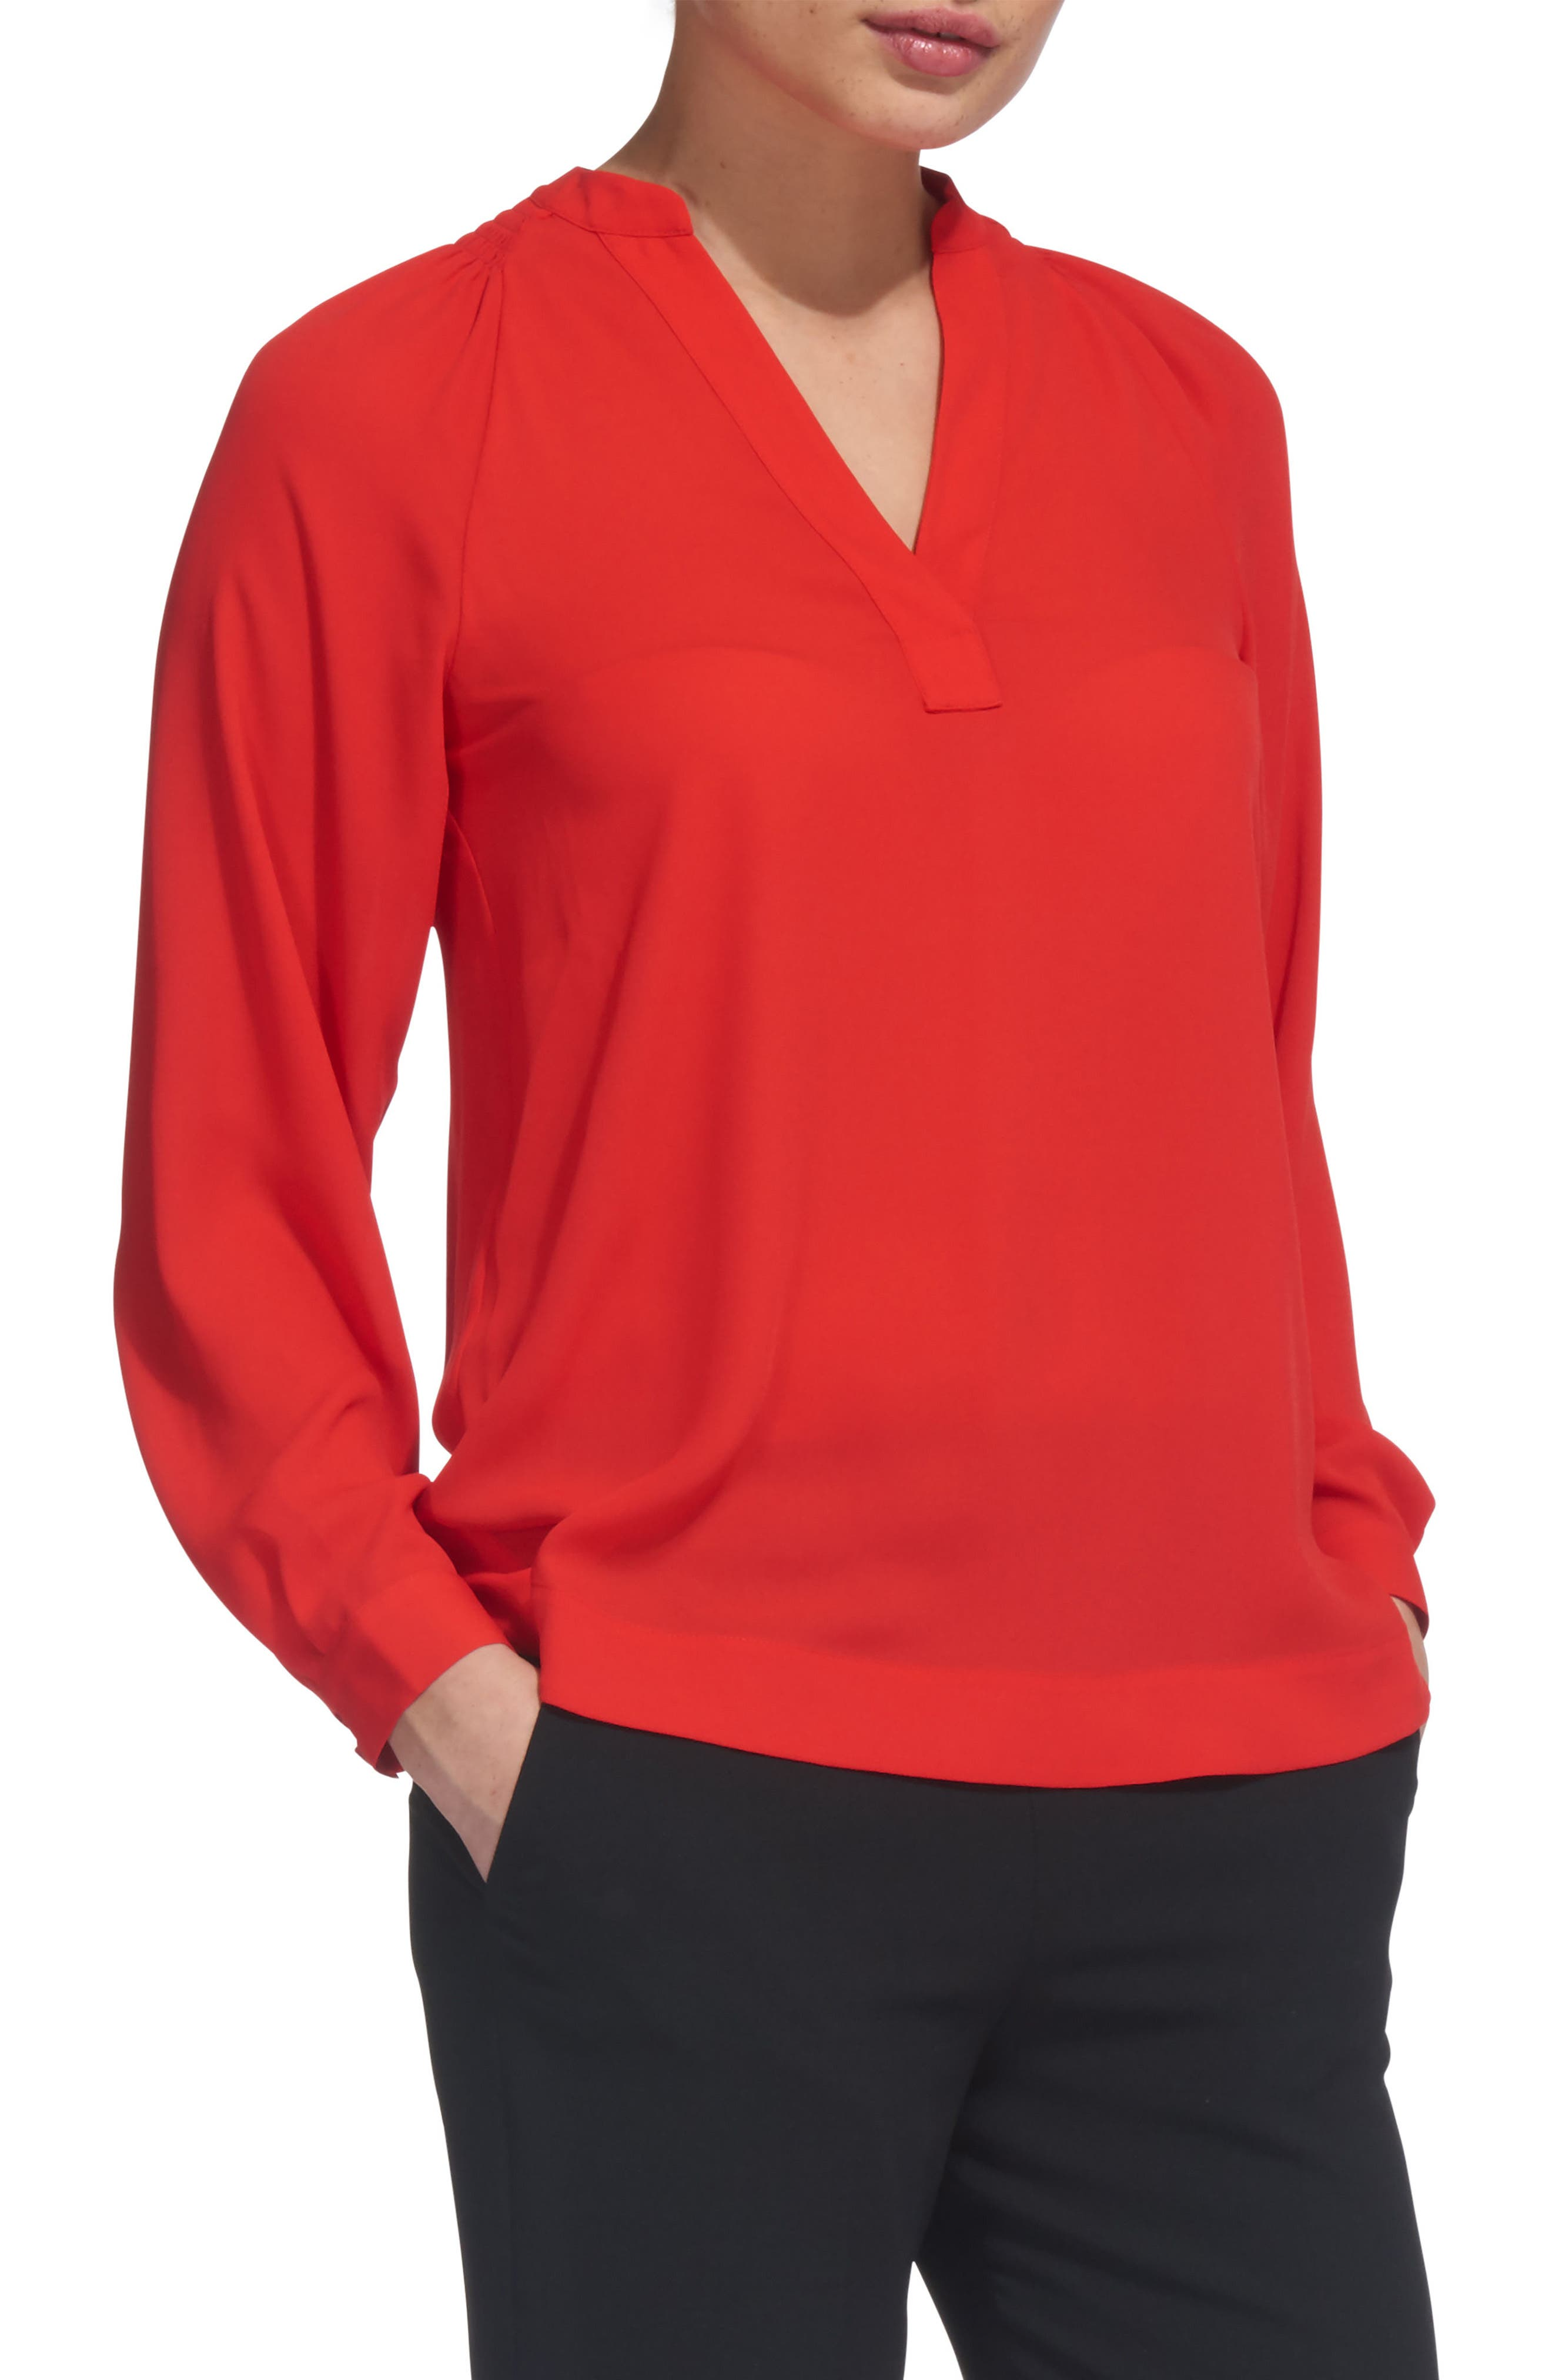 Catalina V-Neck Top,                         Main,                         color, Red